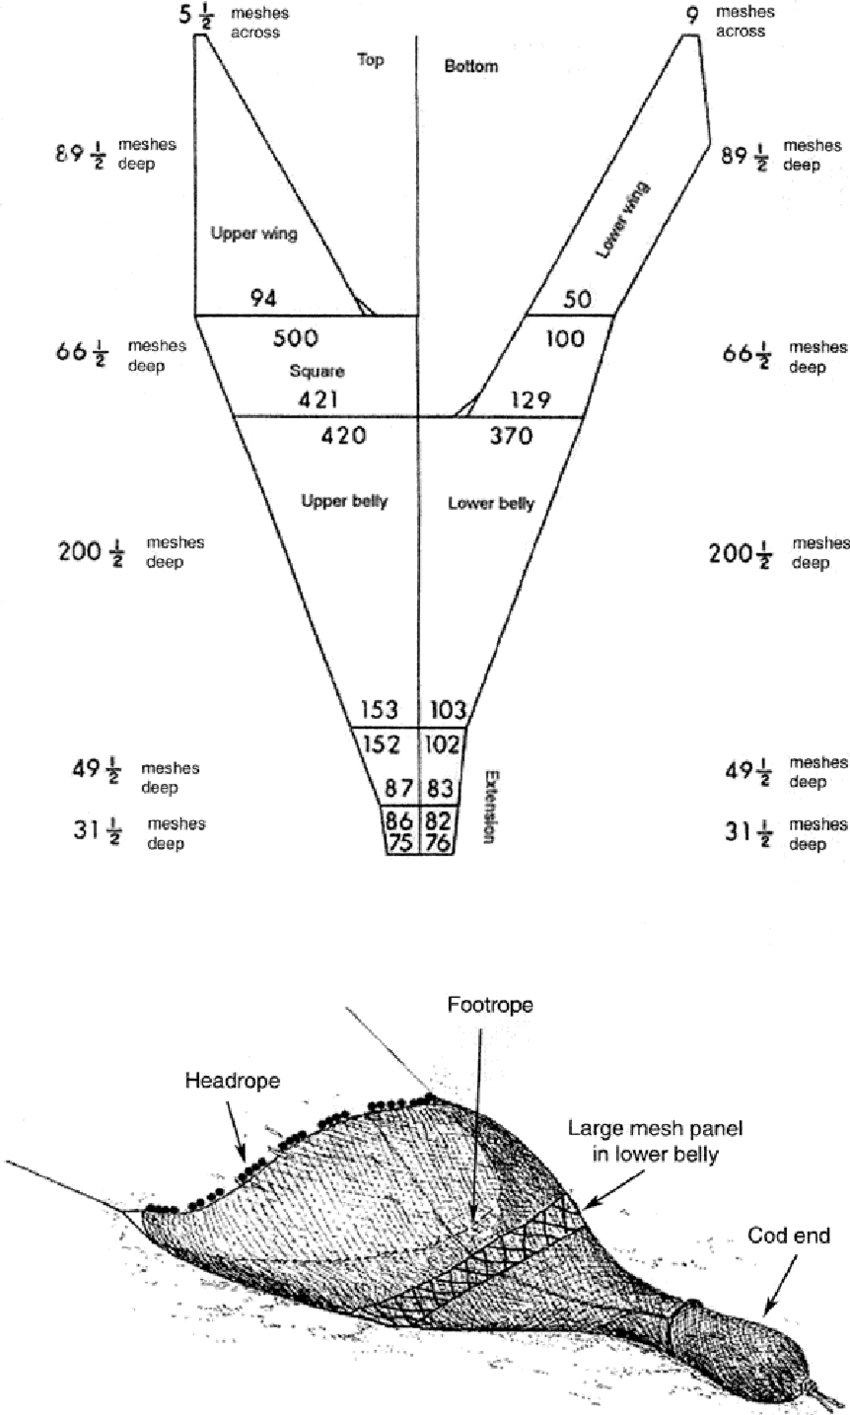 medium resolution of  diagram of the nets used in the study and the placement of the large